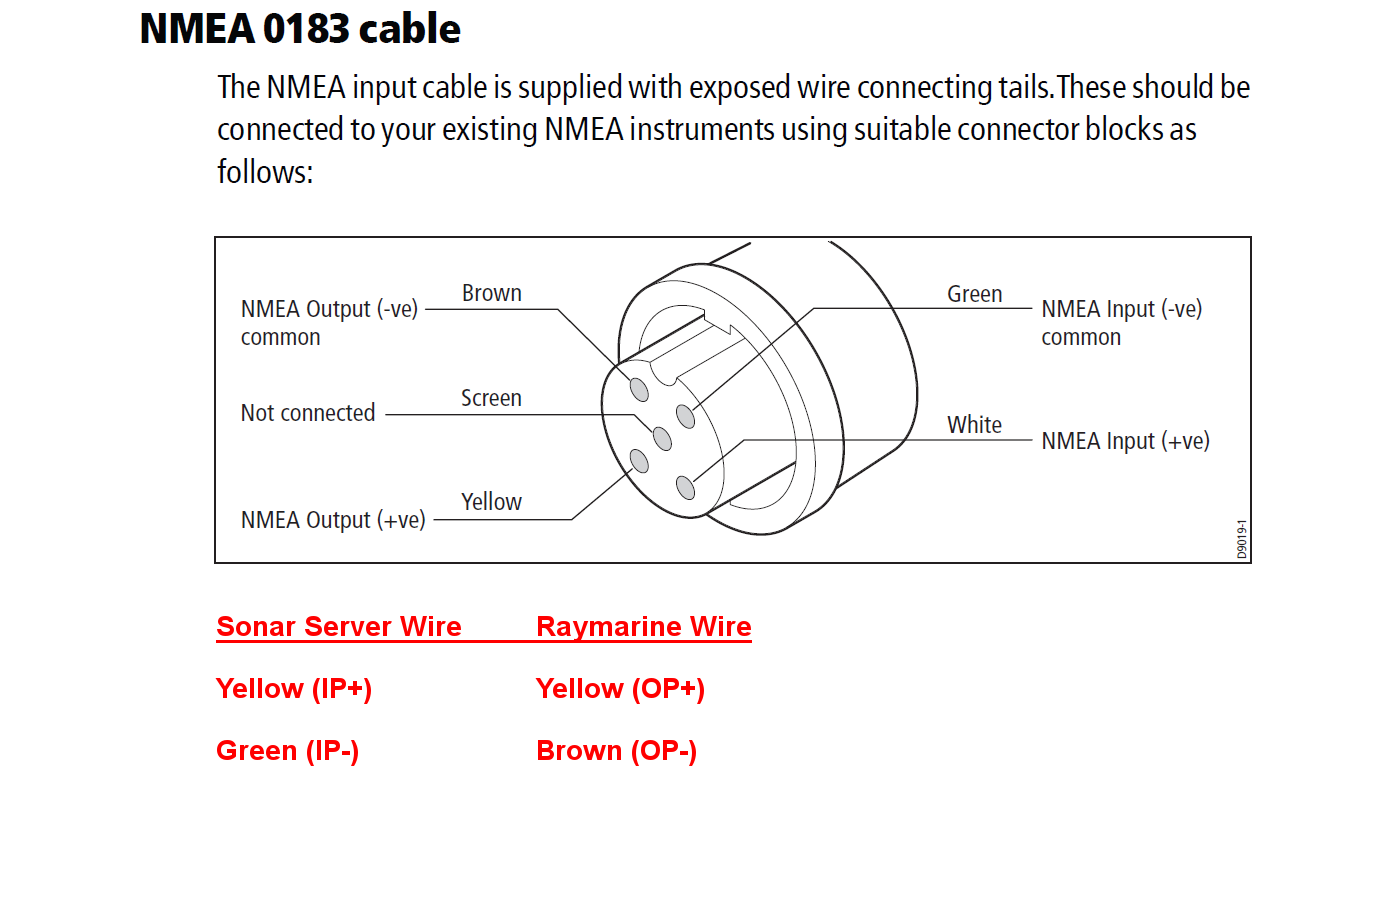 C E Series Classic interfacing to raymarine classic c e series sonar server american Marine Inboard Wiring-Diagram at pacquiaovsvargaslive.co